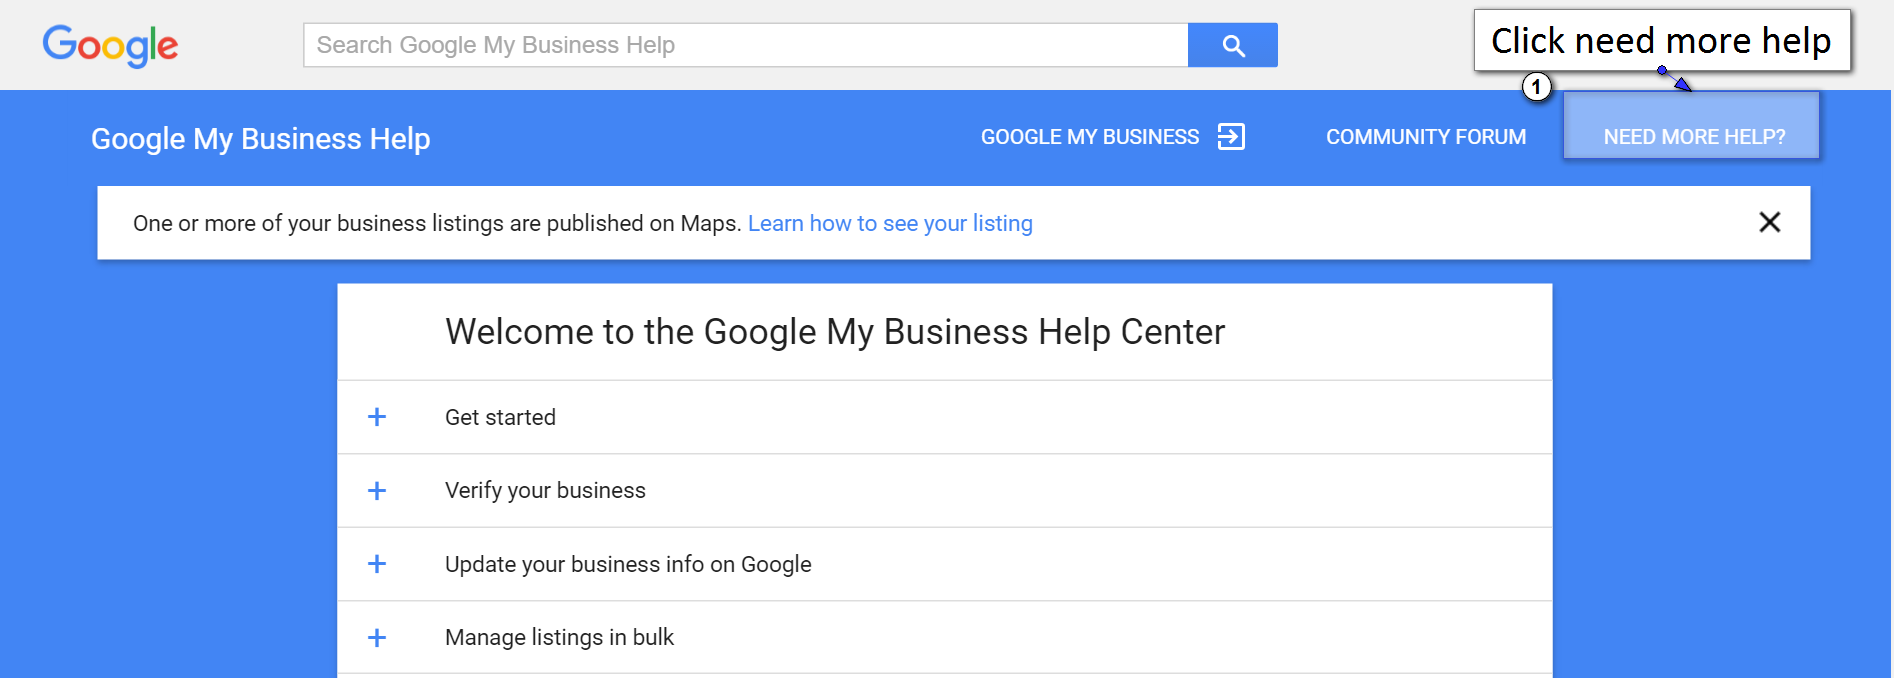 Need more help for calling Google suppot